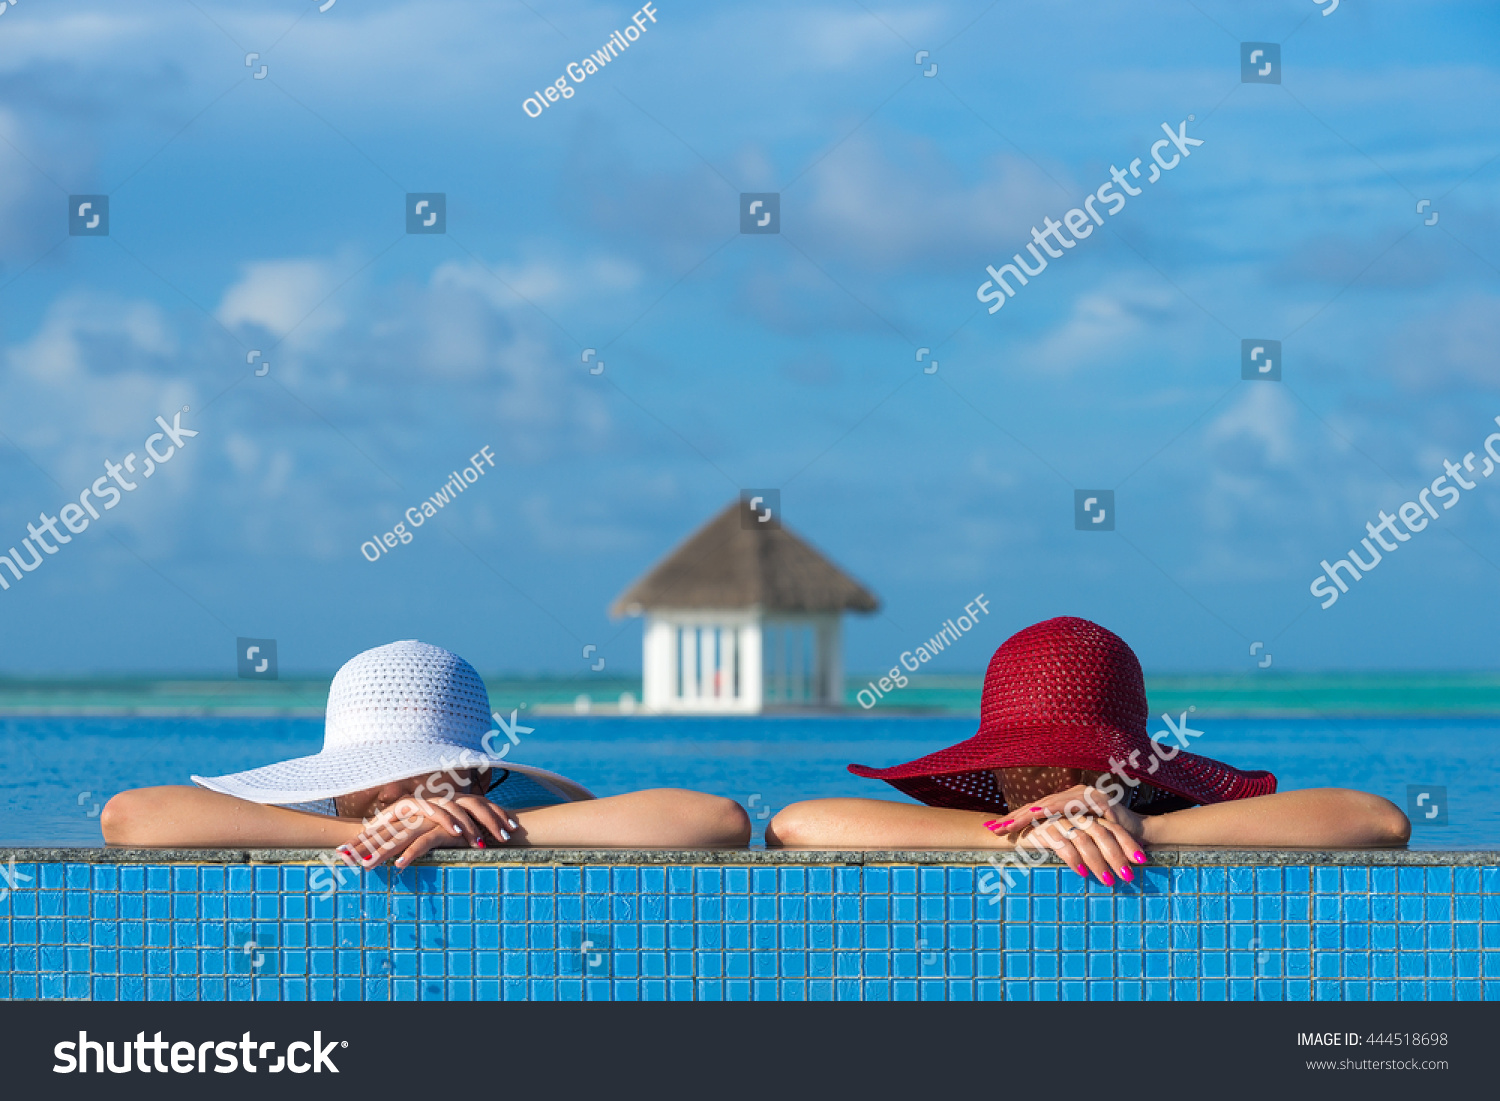 Two women in a hat sitting on the edge of the swimming pool